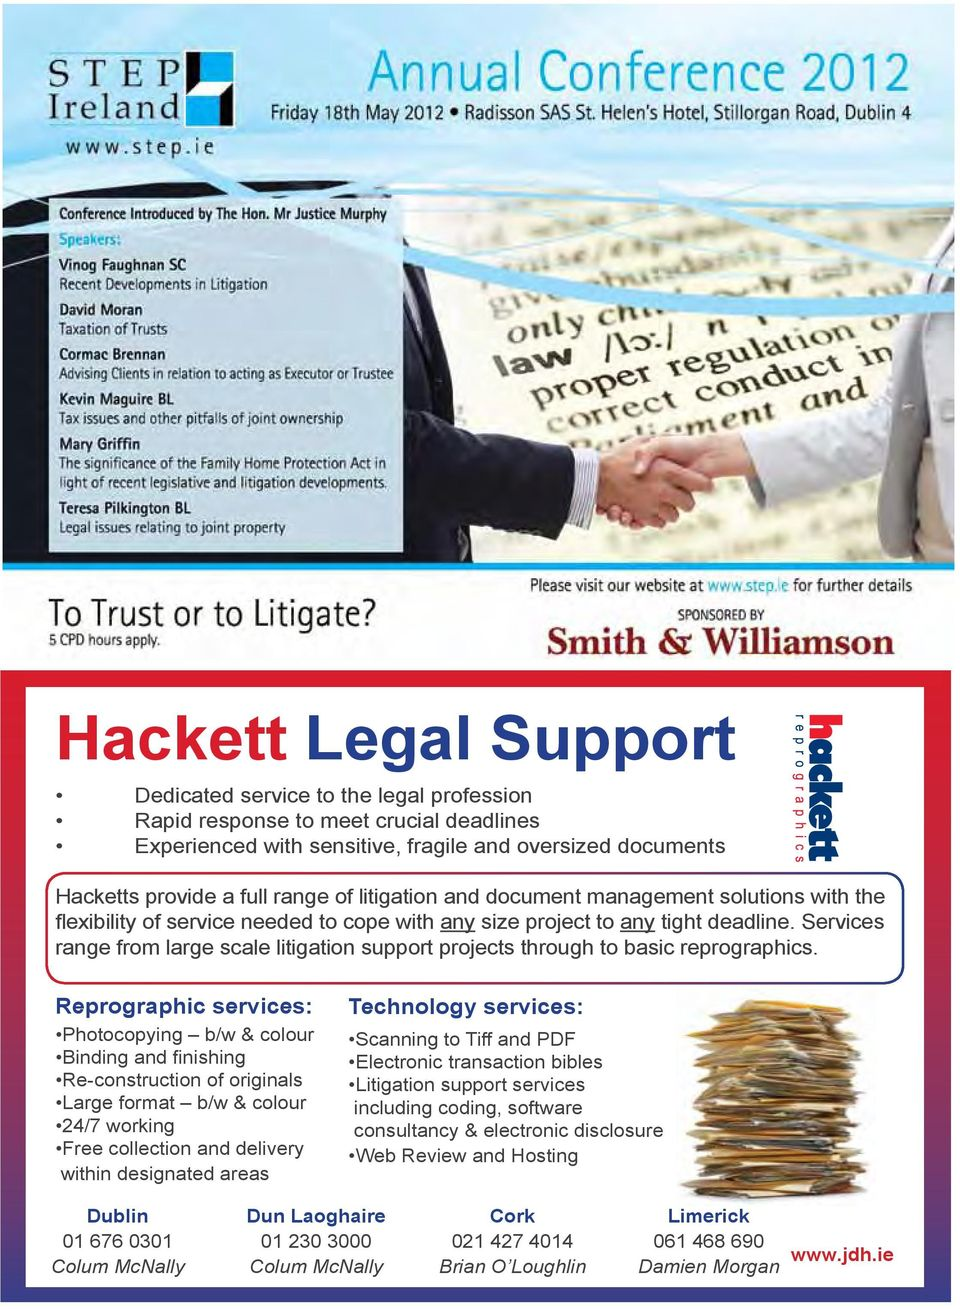 Services range from large scale litigation support projects through to basic reprographics.